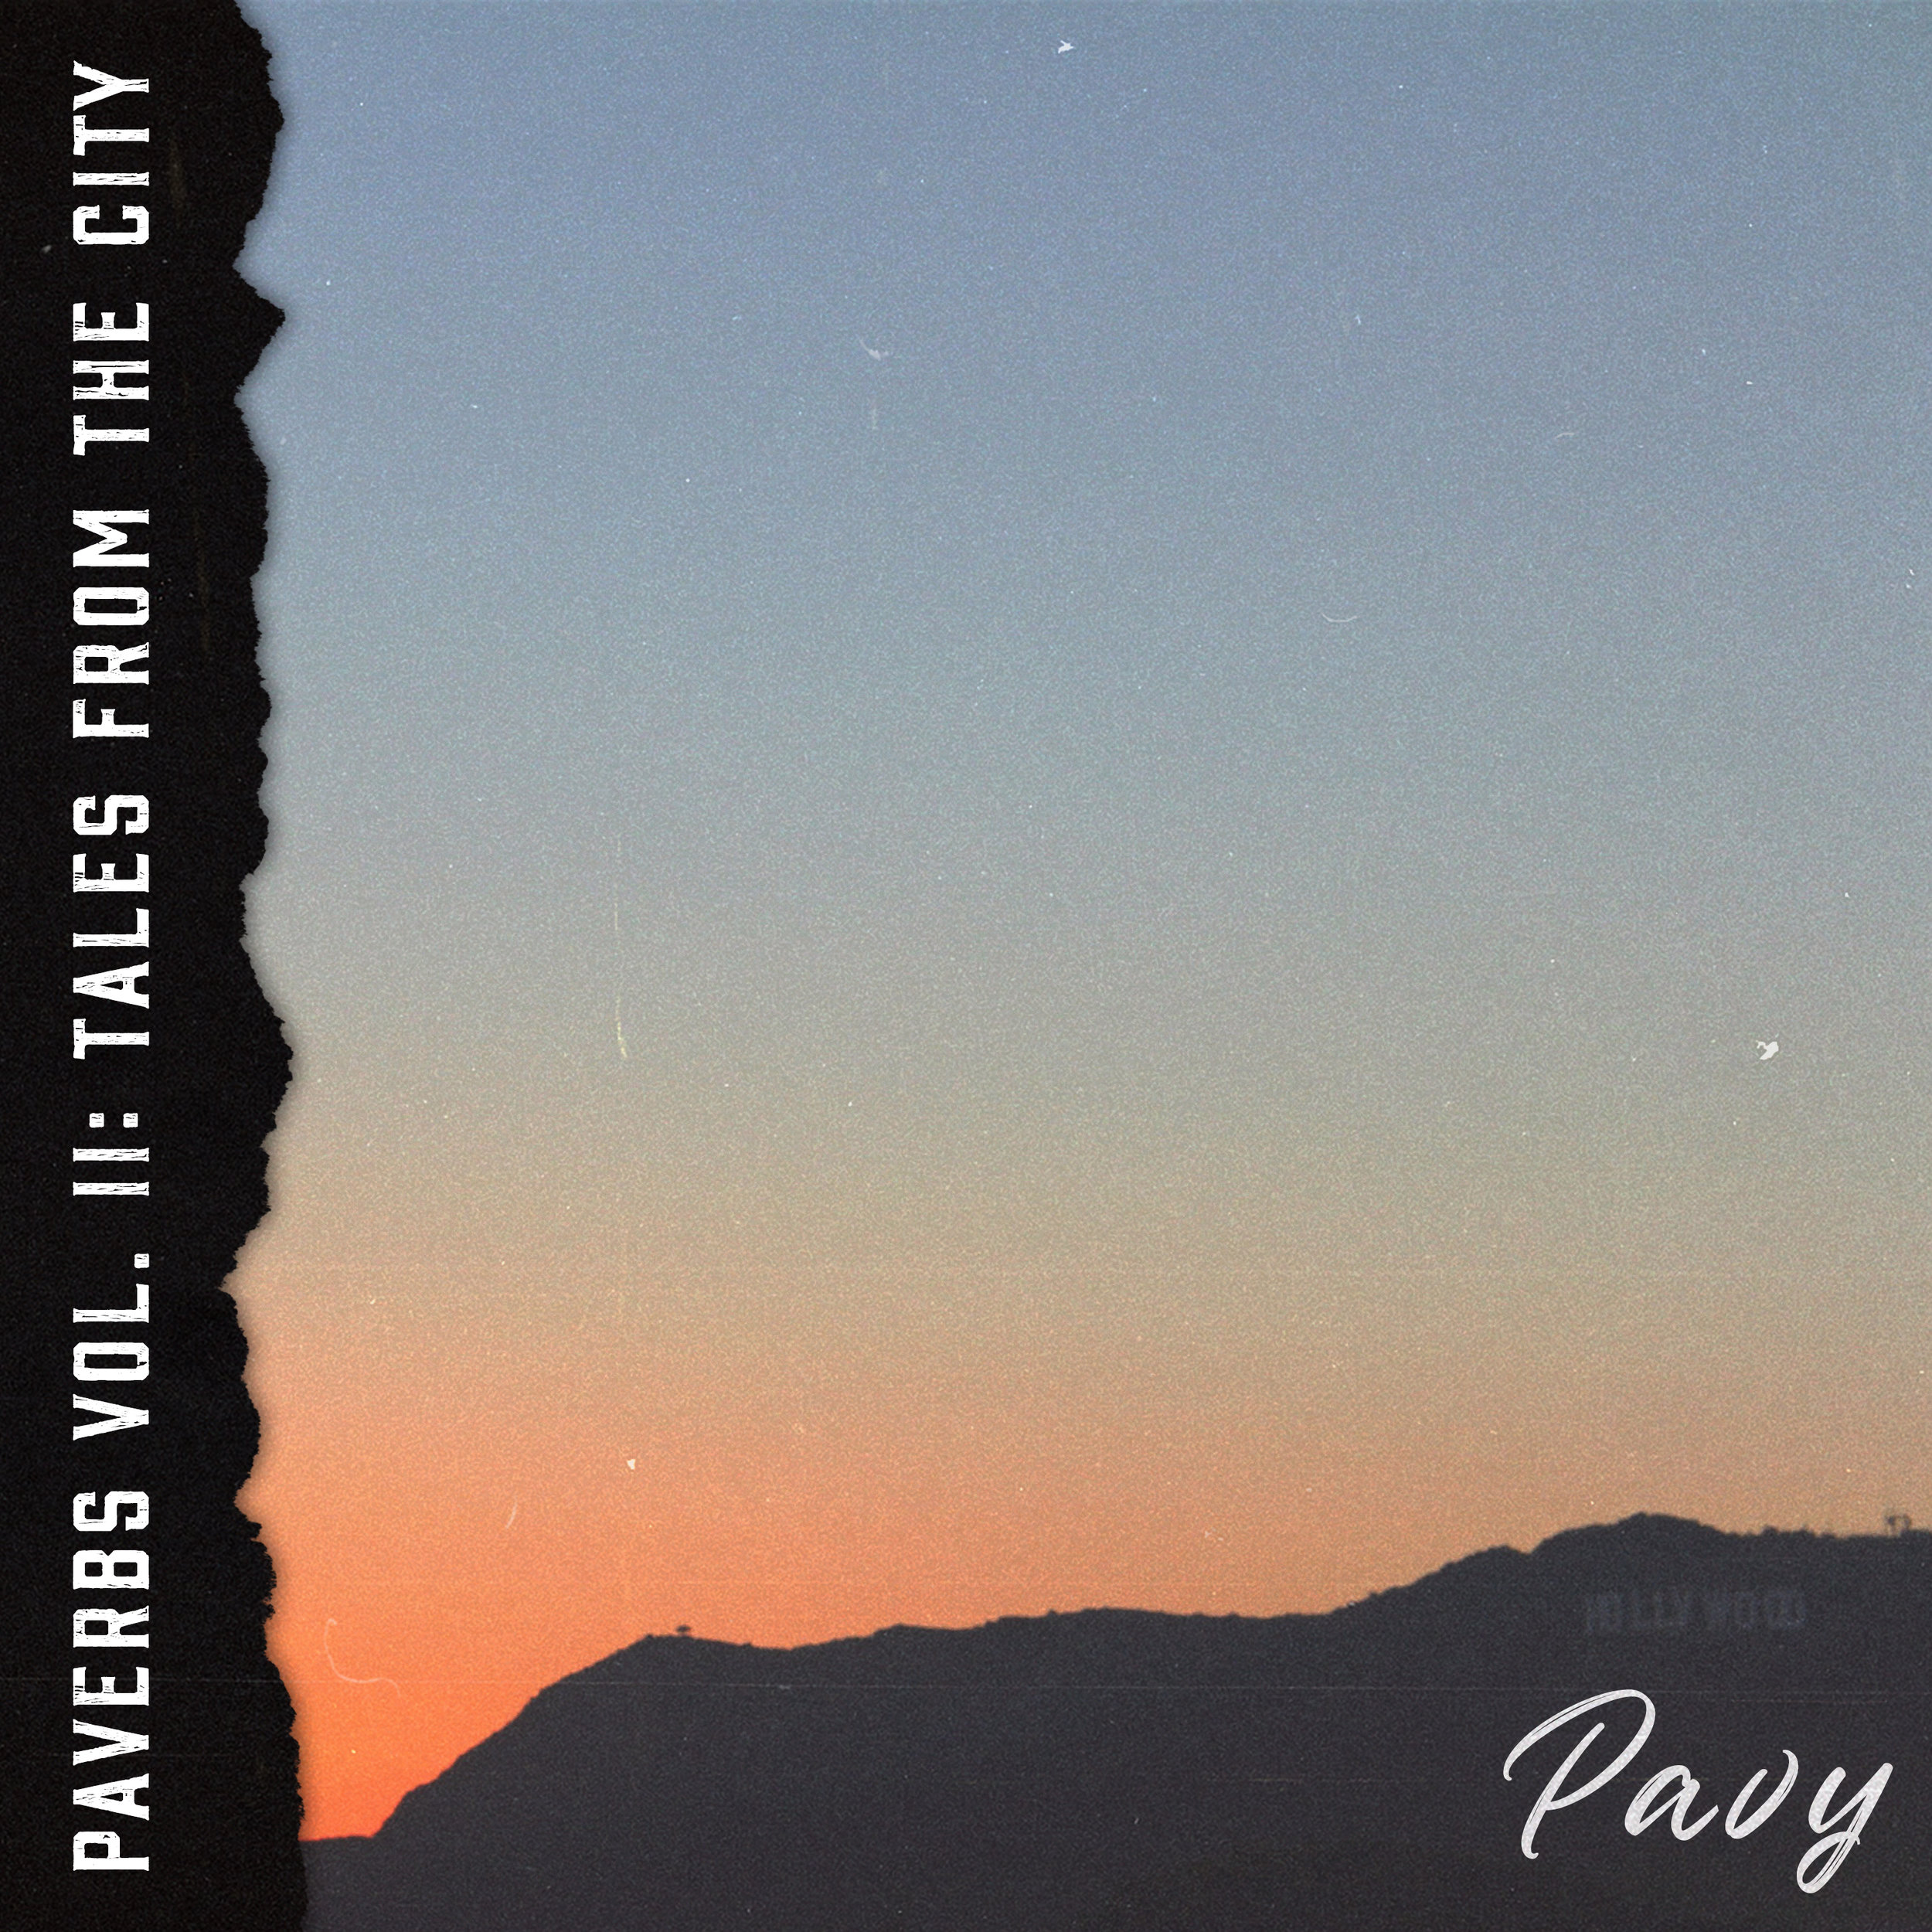 """Me, by Jonathan McCoy"" the newest free album from Pavy."